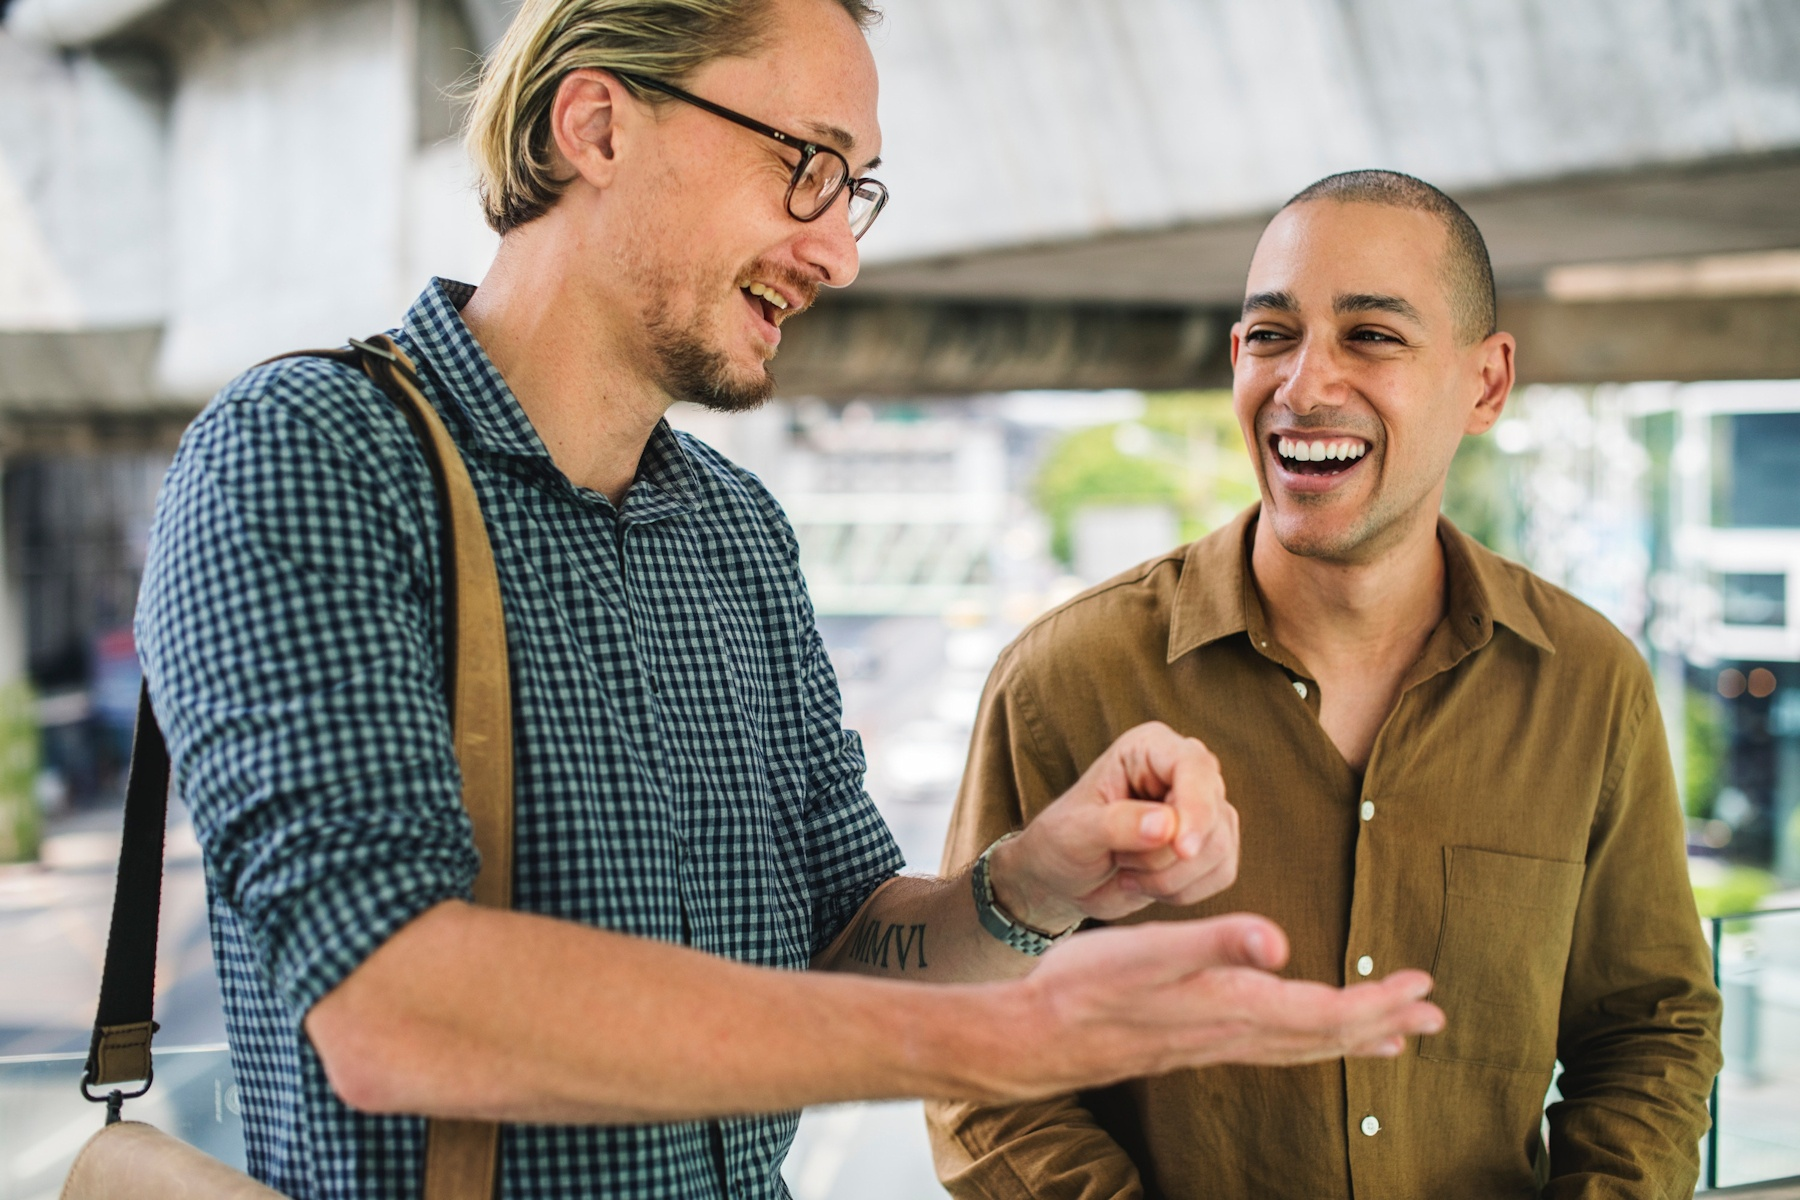 5 Ways Startups Can Attract Great Talent in a Competitive Market